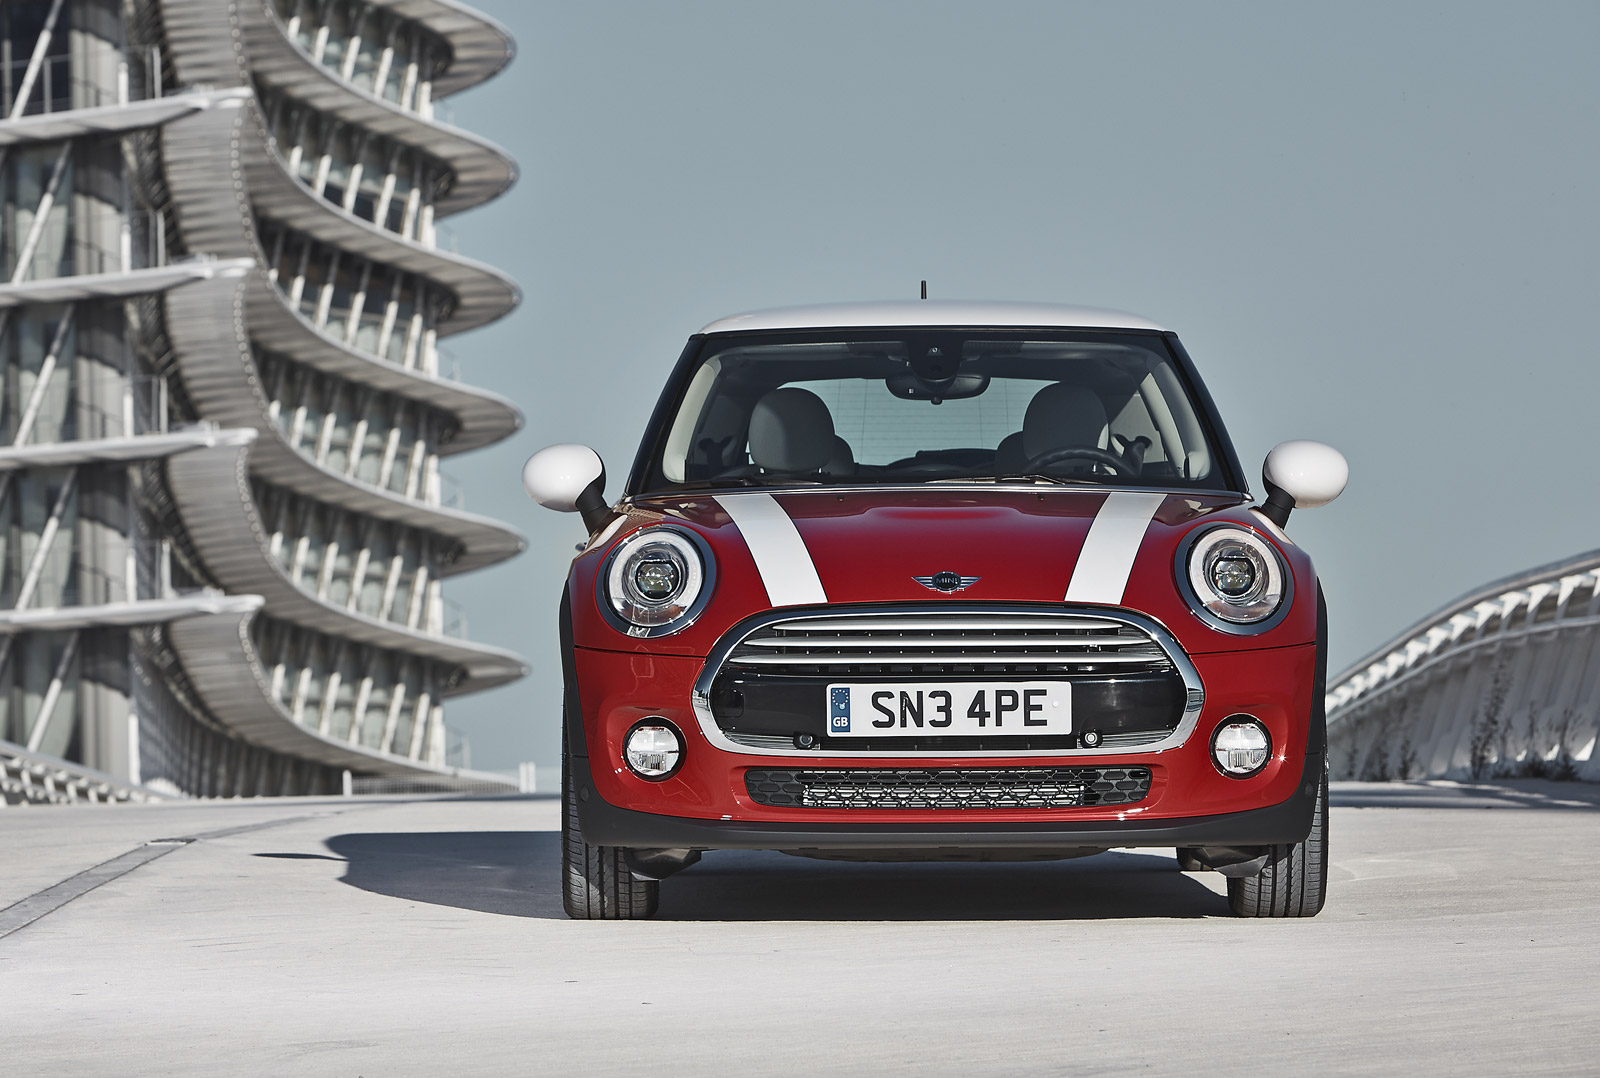 2014 2015 Mini Cooper Recalled For Weight Misstatement Wiring Diagram To Improve Crash Protection